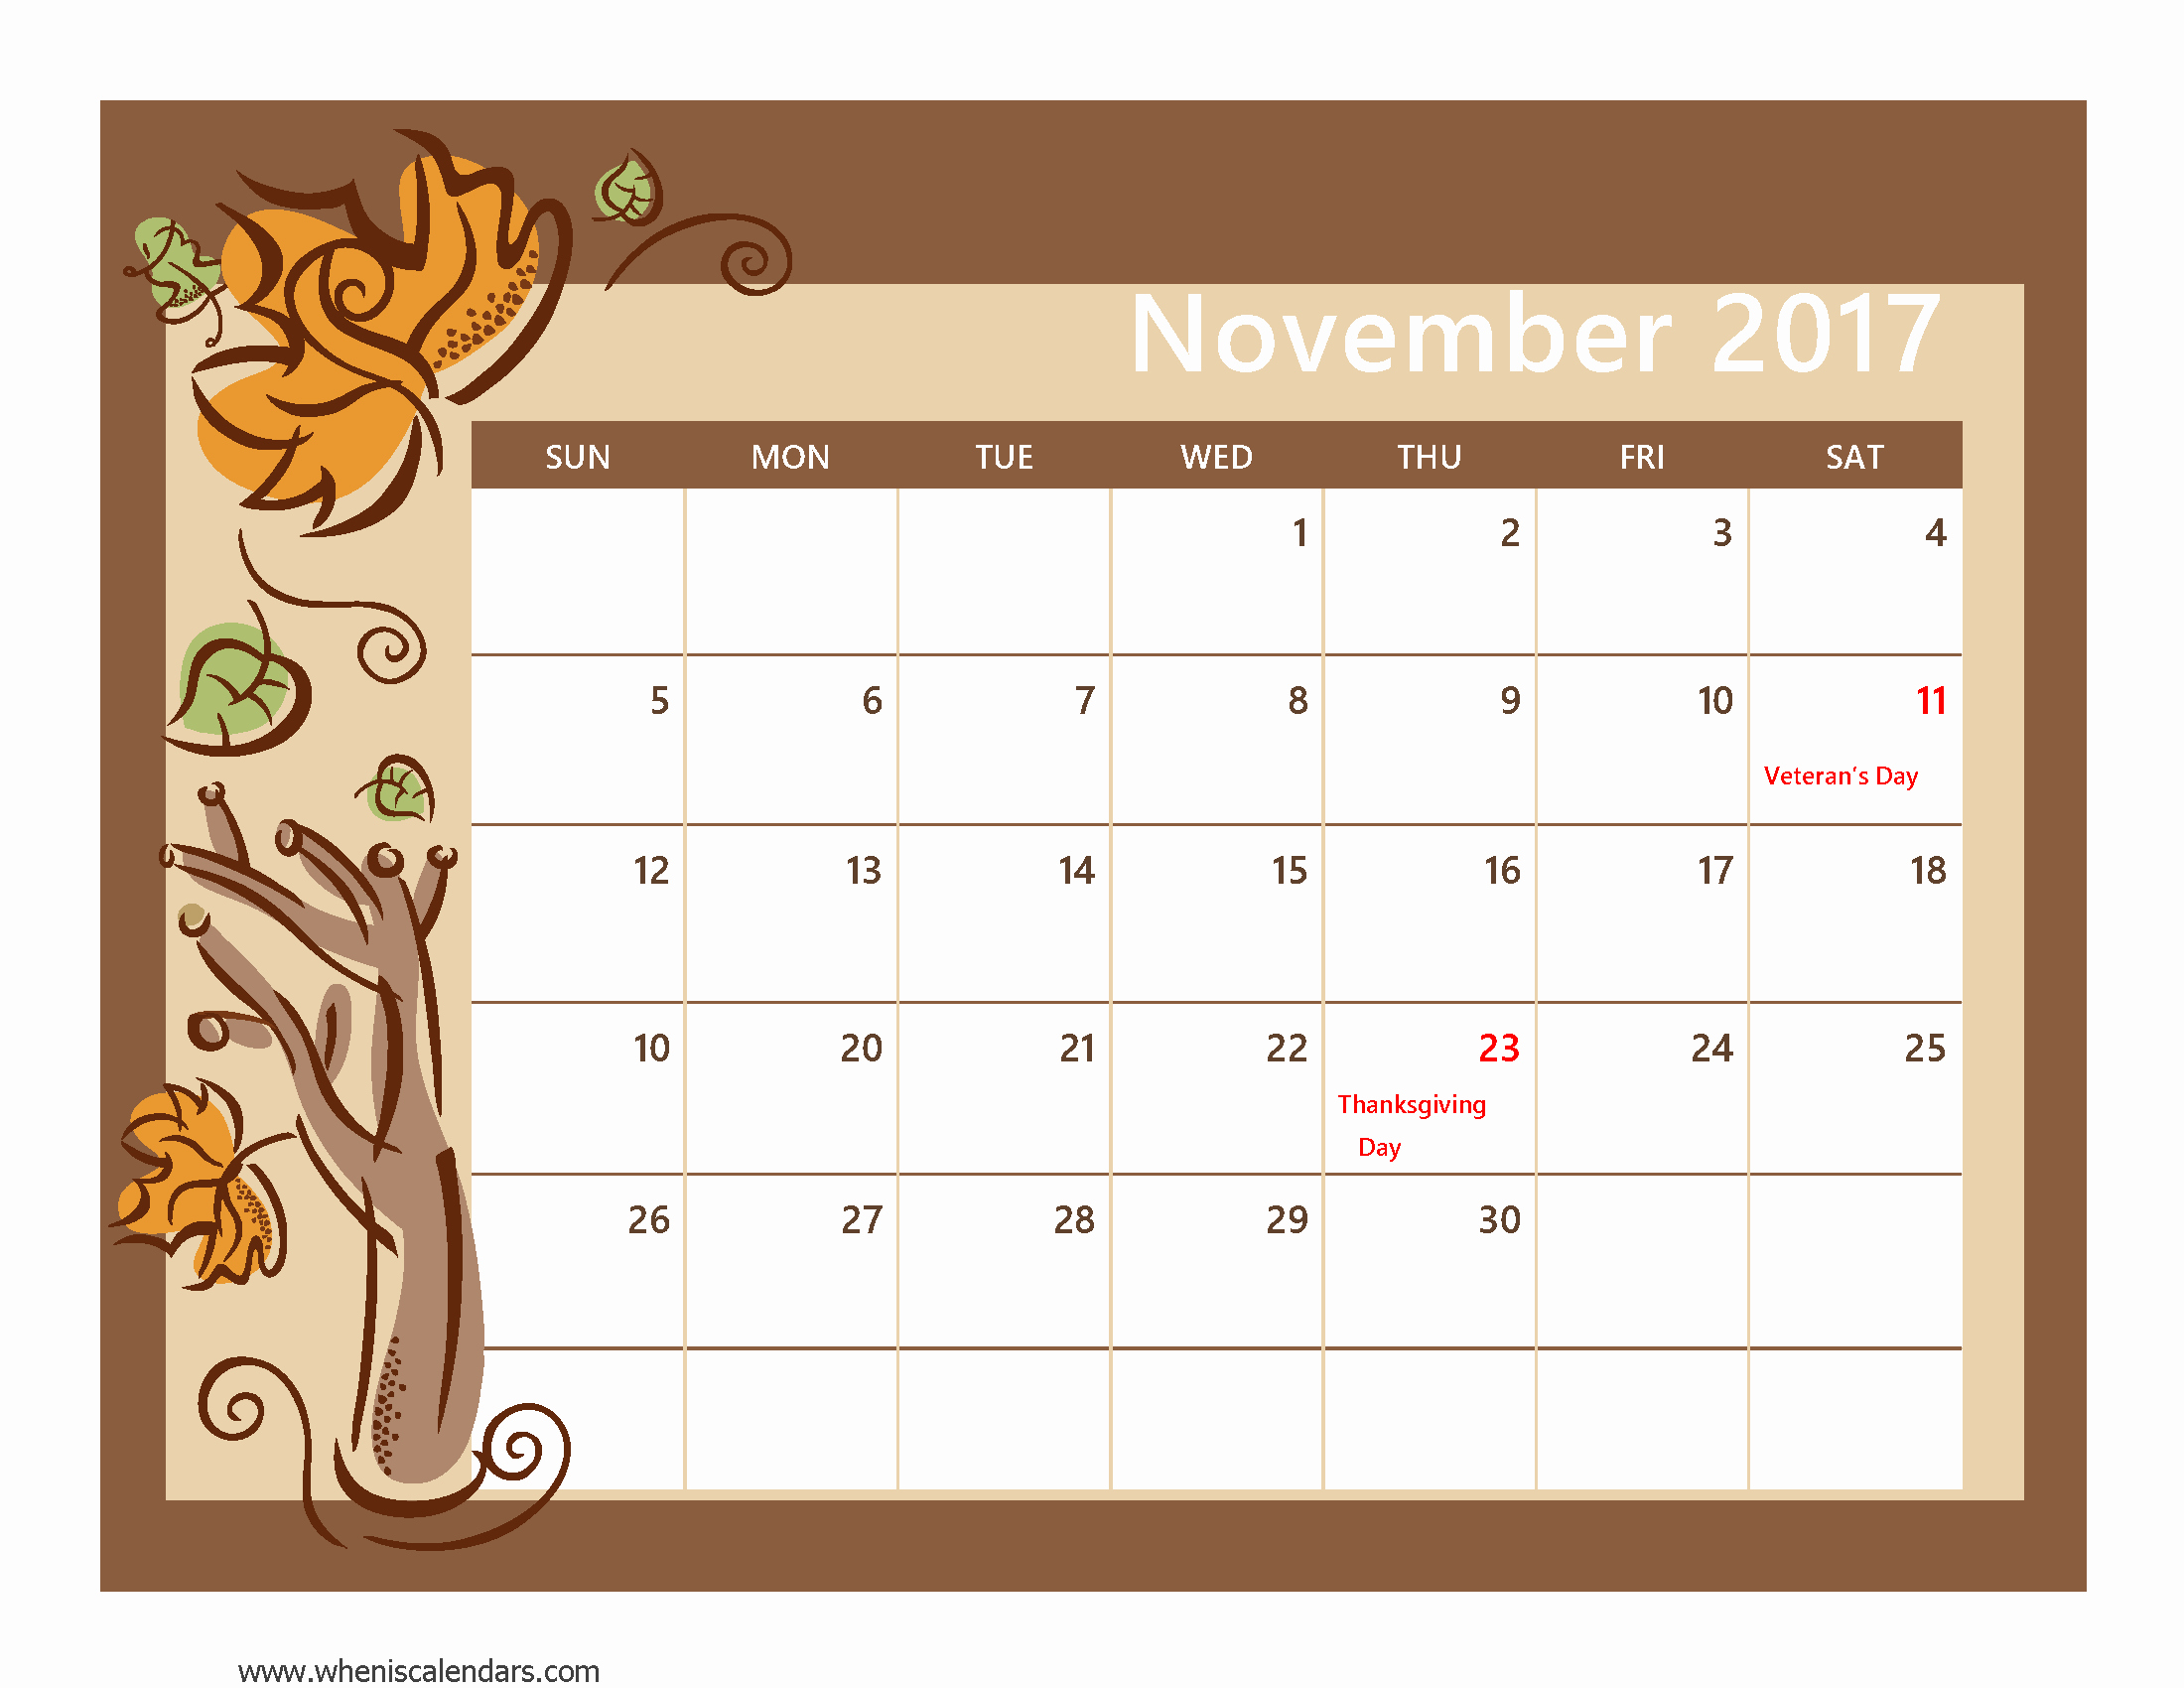 2017 Weekly Calendar with Holidays Awesome November 2017 Calendar with Holidays